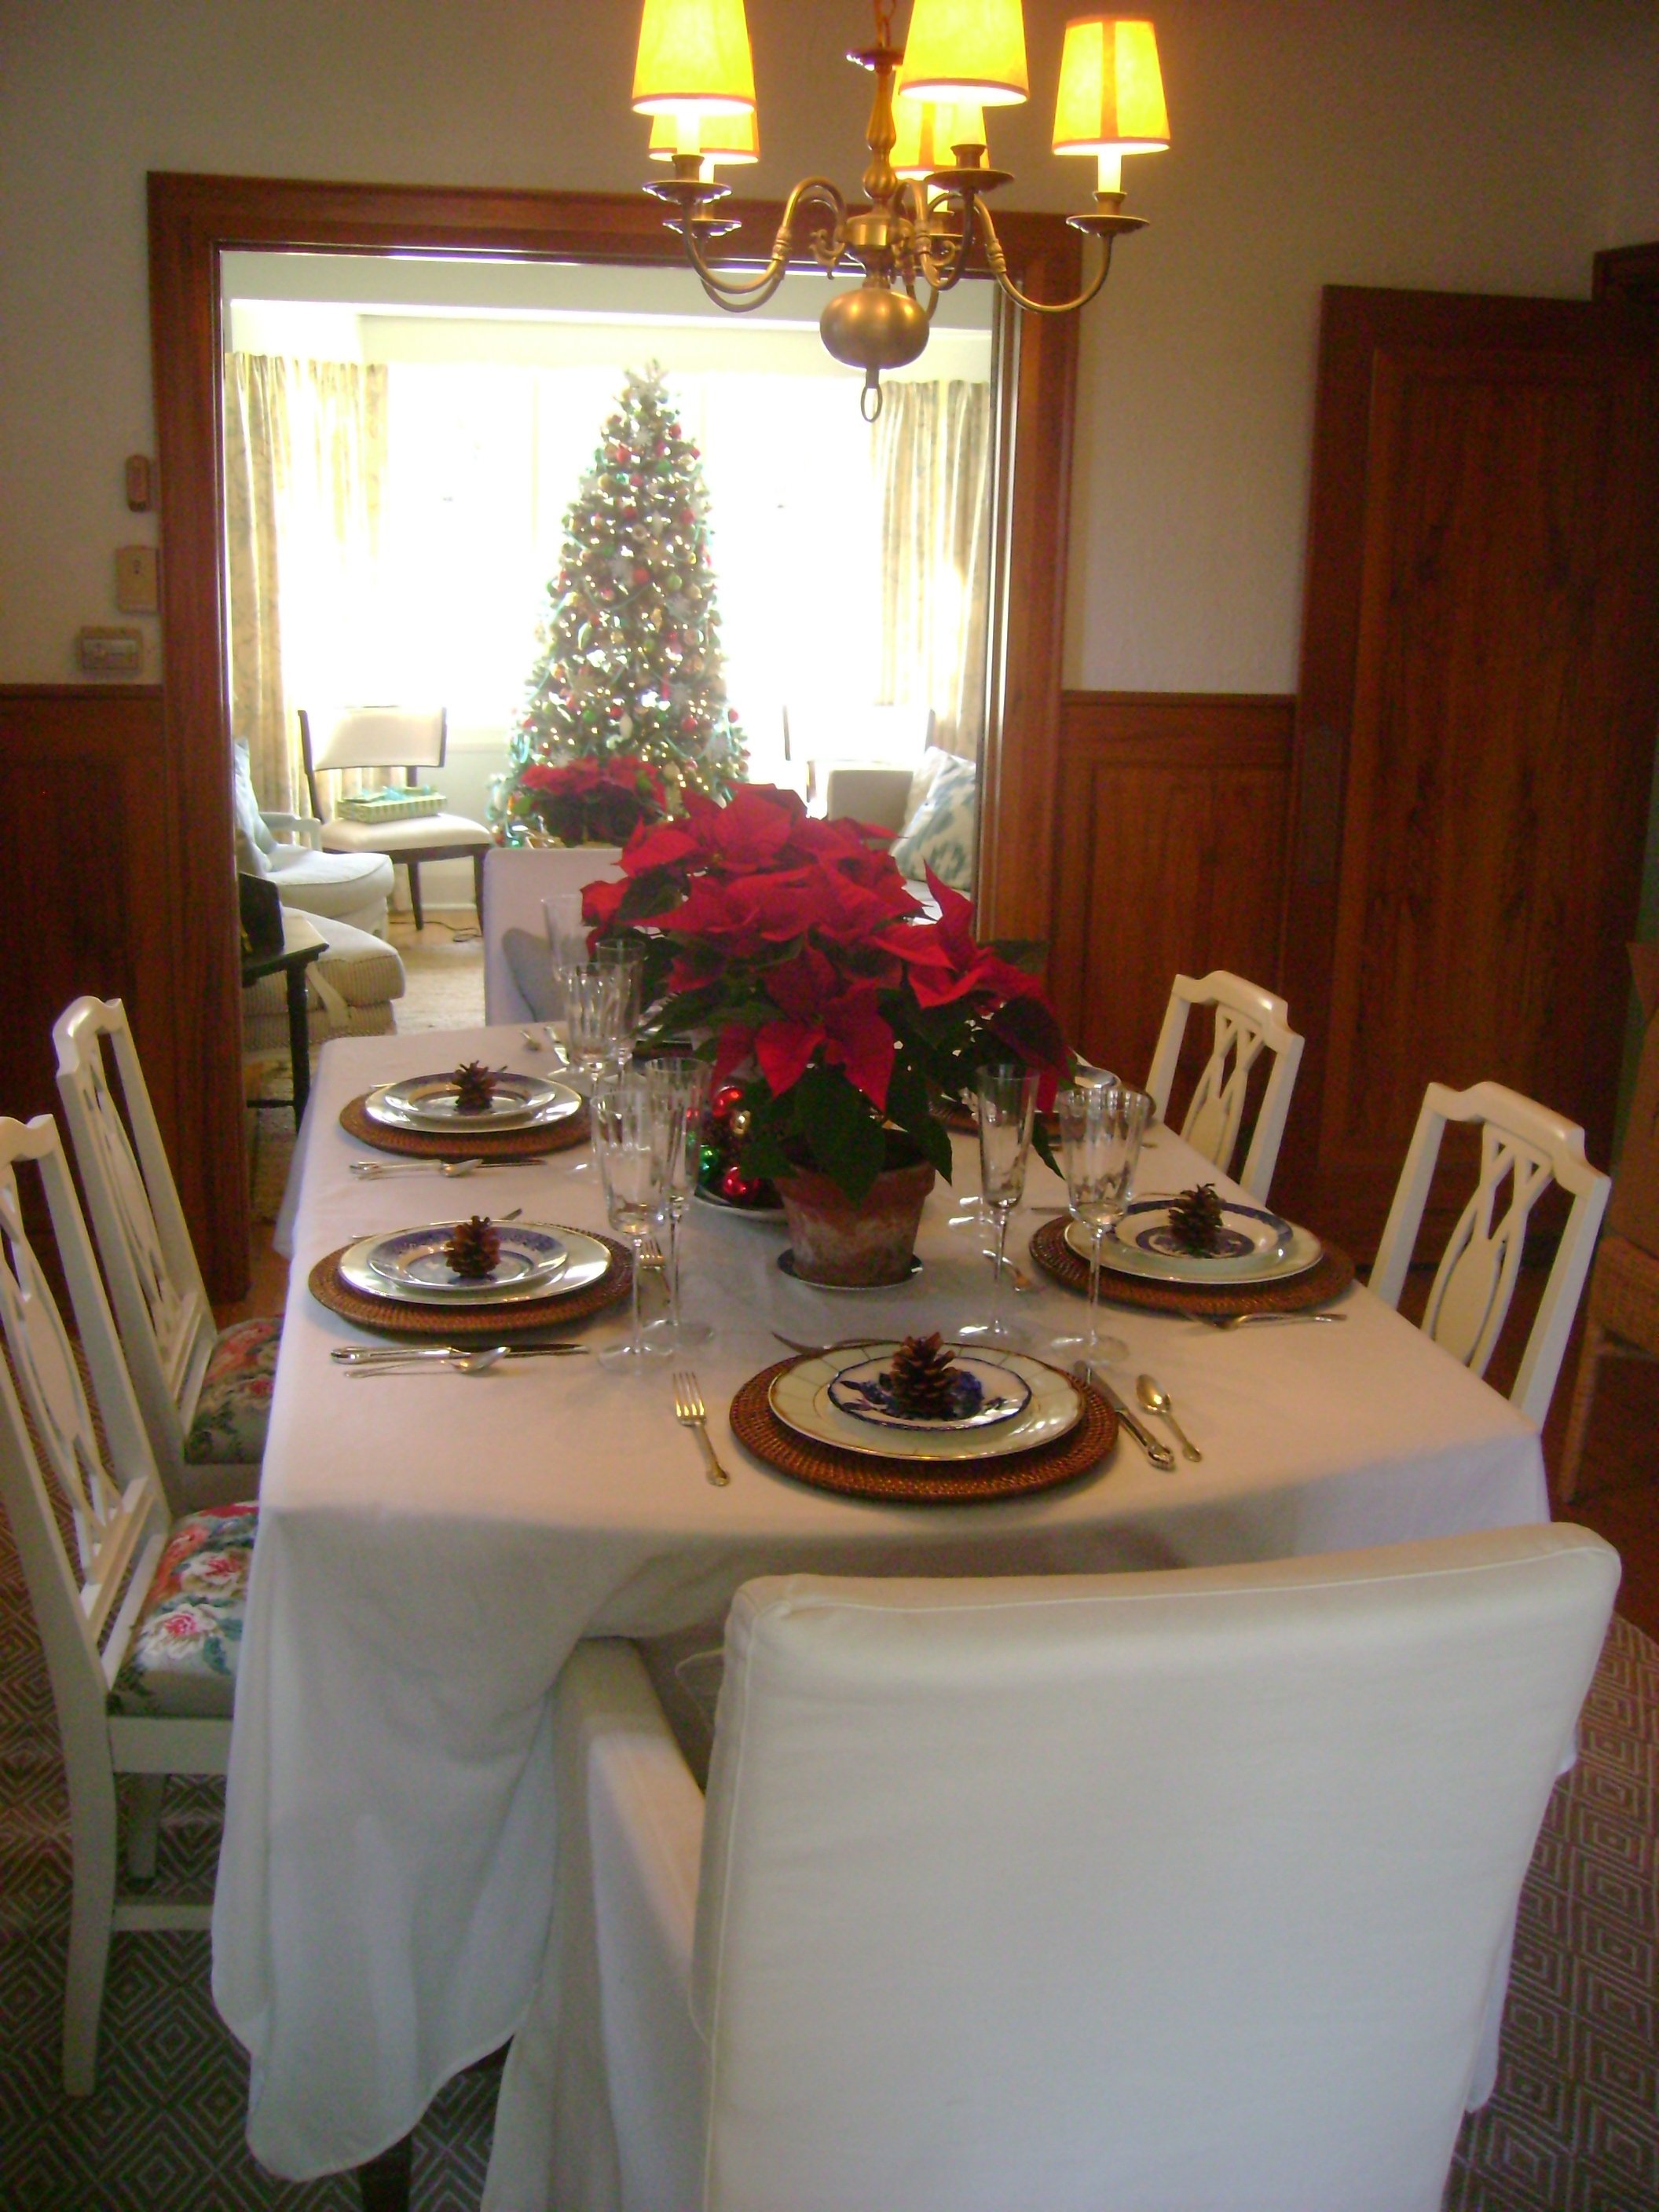 A view of the dining table through to the Christmas tree